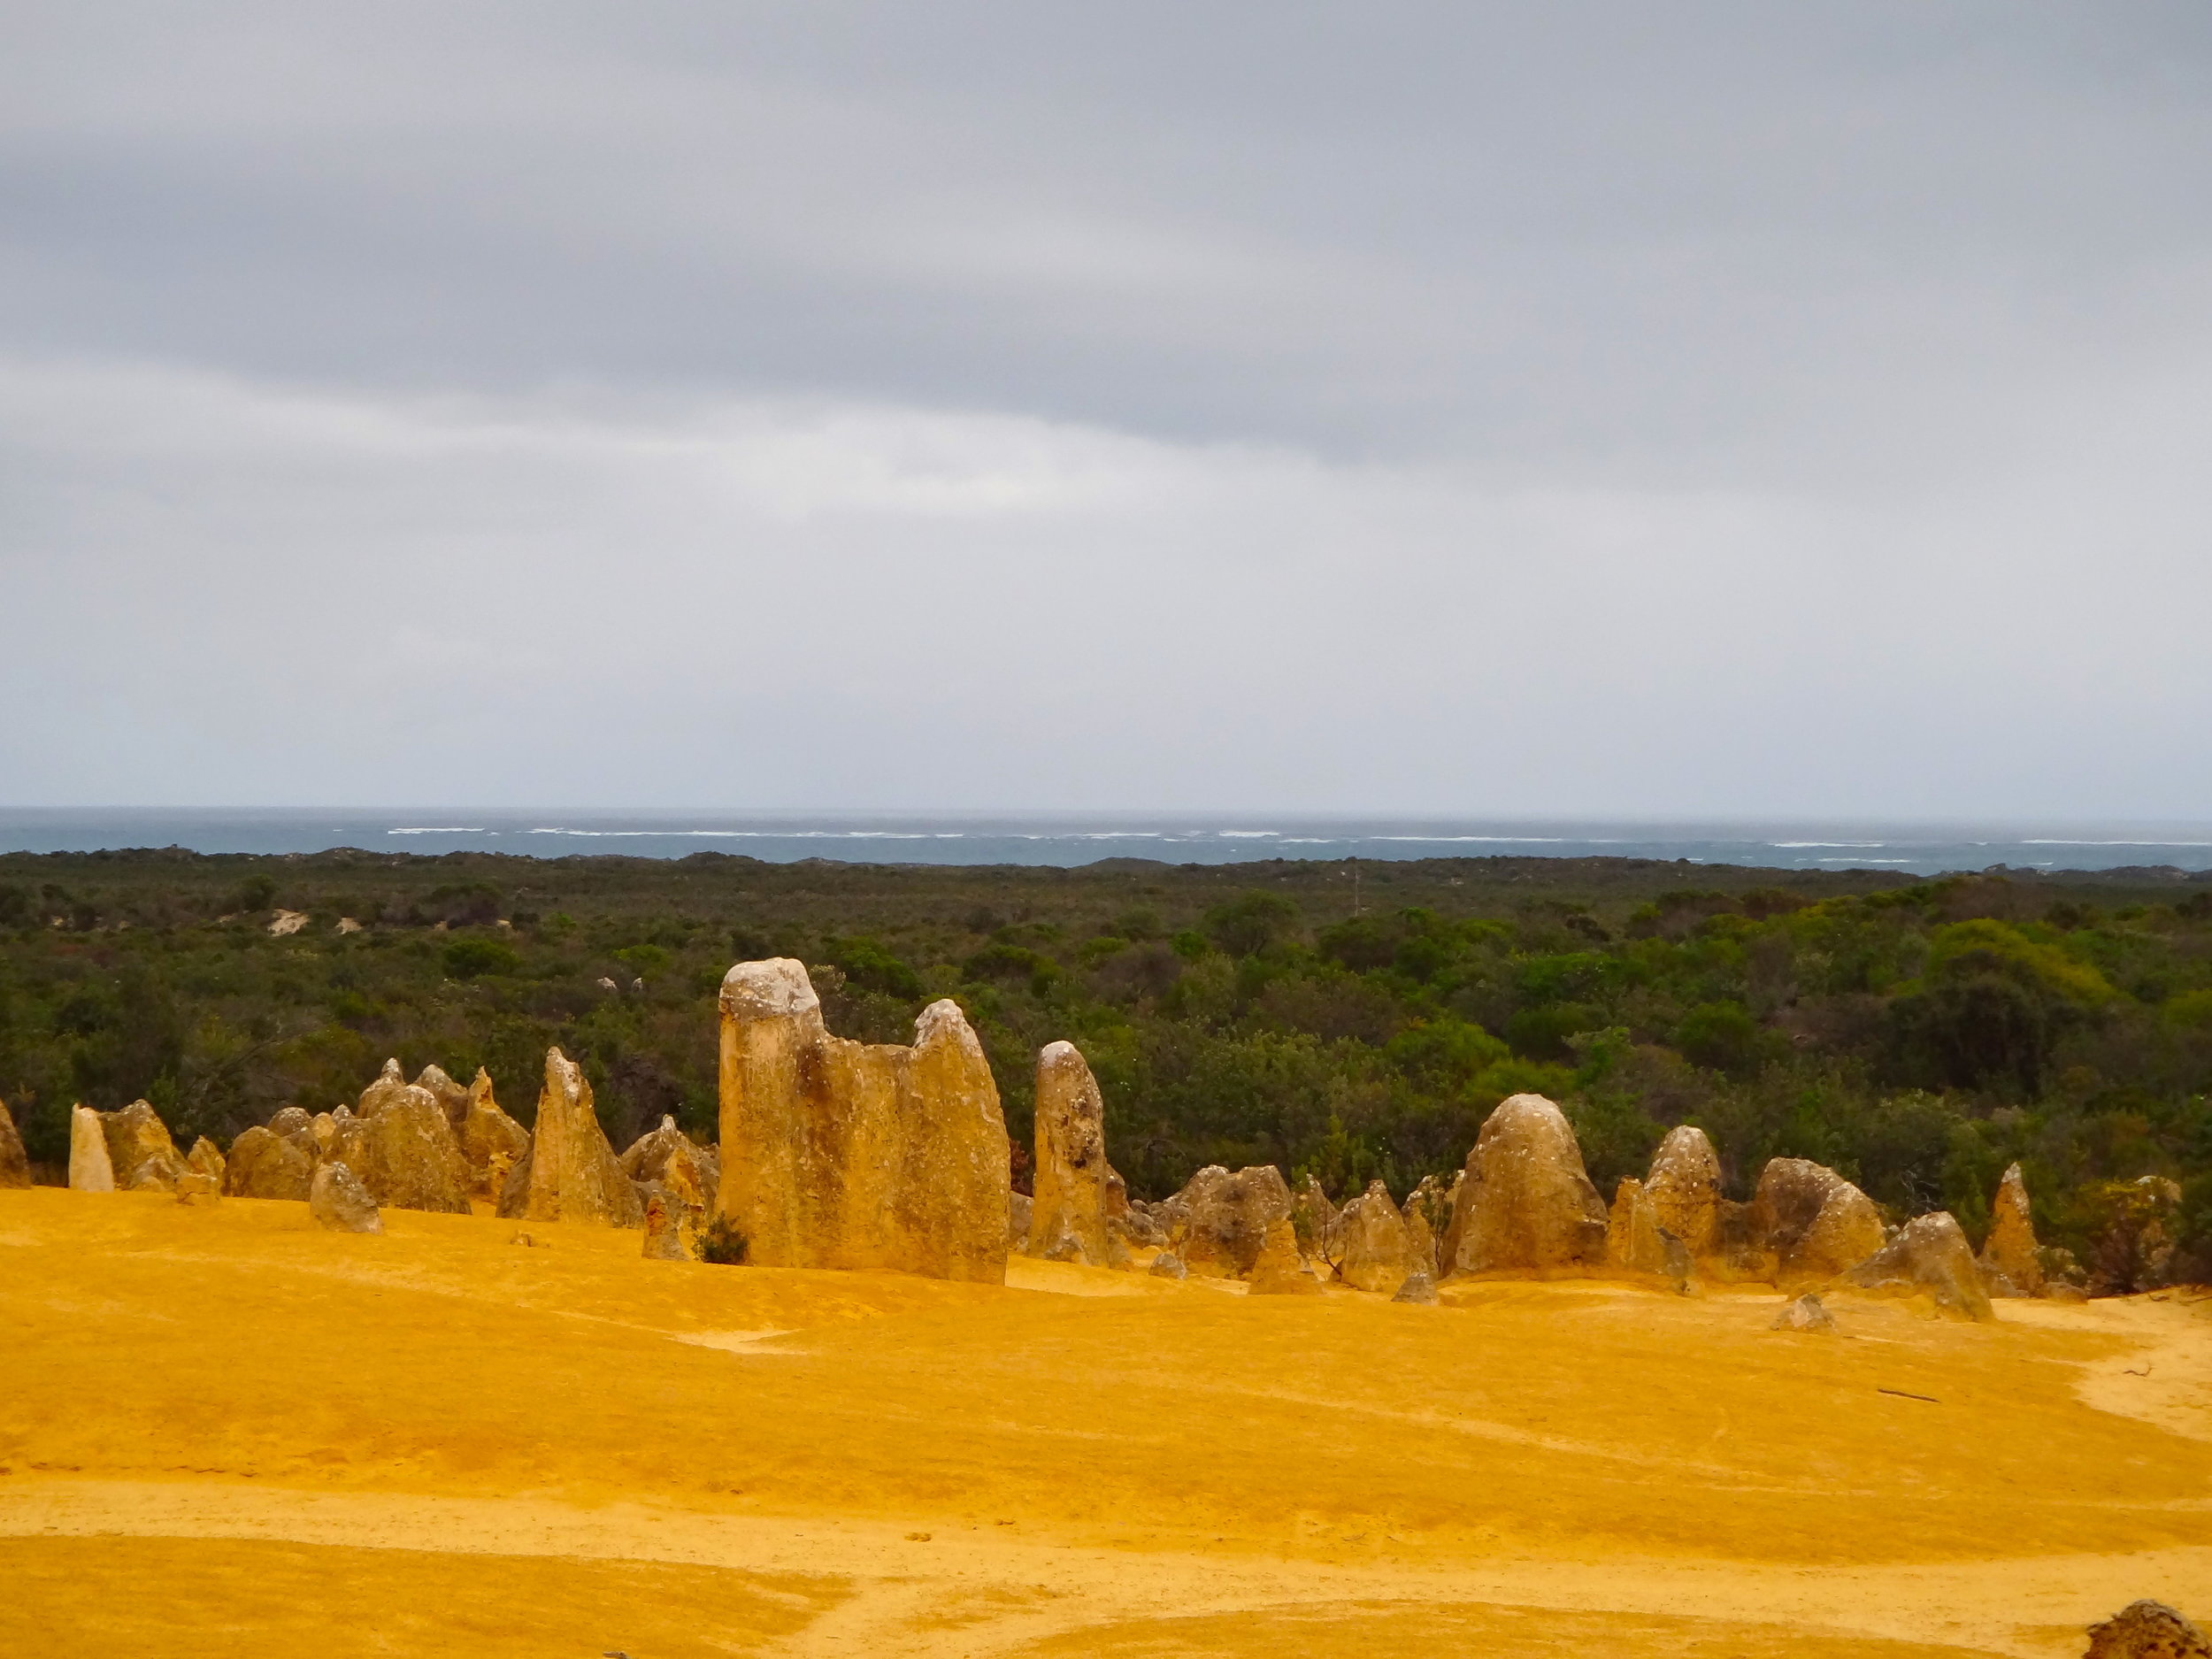 ...into fascinating sandy areas with karst pinnacles still not understood by scientists